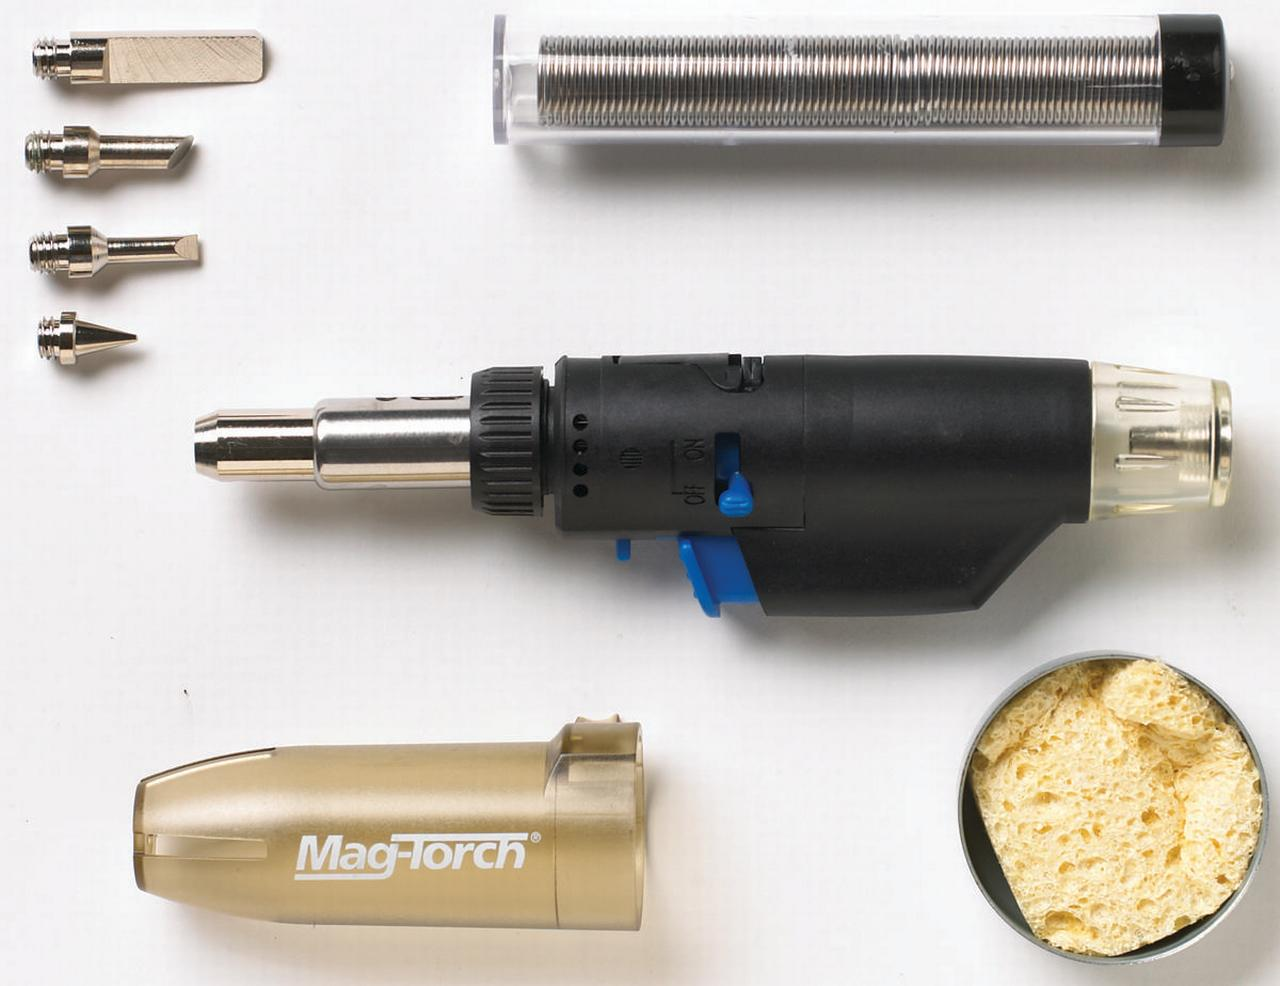 Mag-Torch MT 775 C 3-In-1 Micro Torch Kit With Case, Butane Fuel by Magna Industries, Inc.